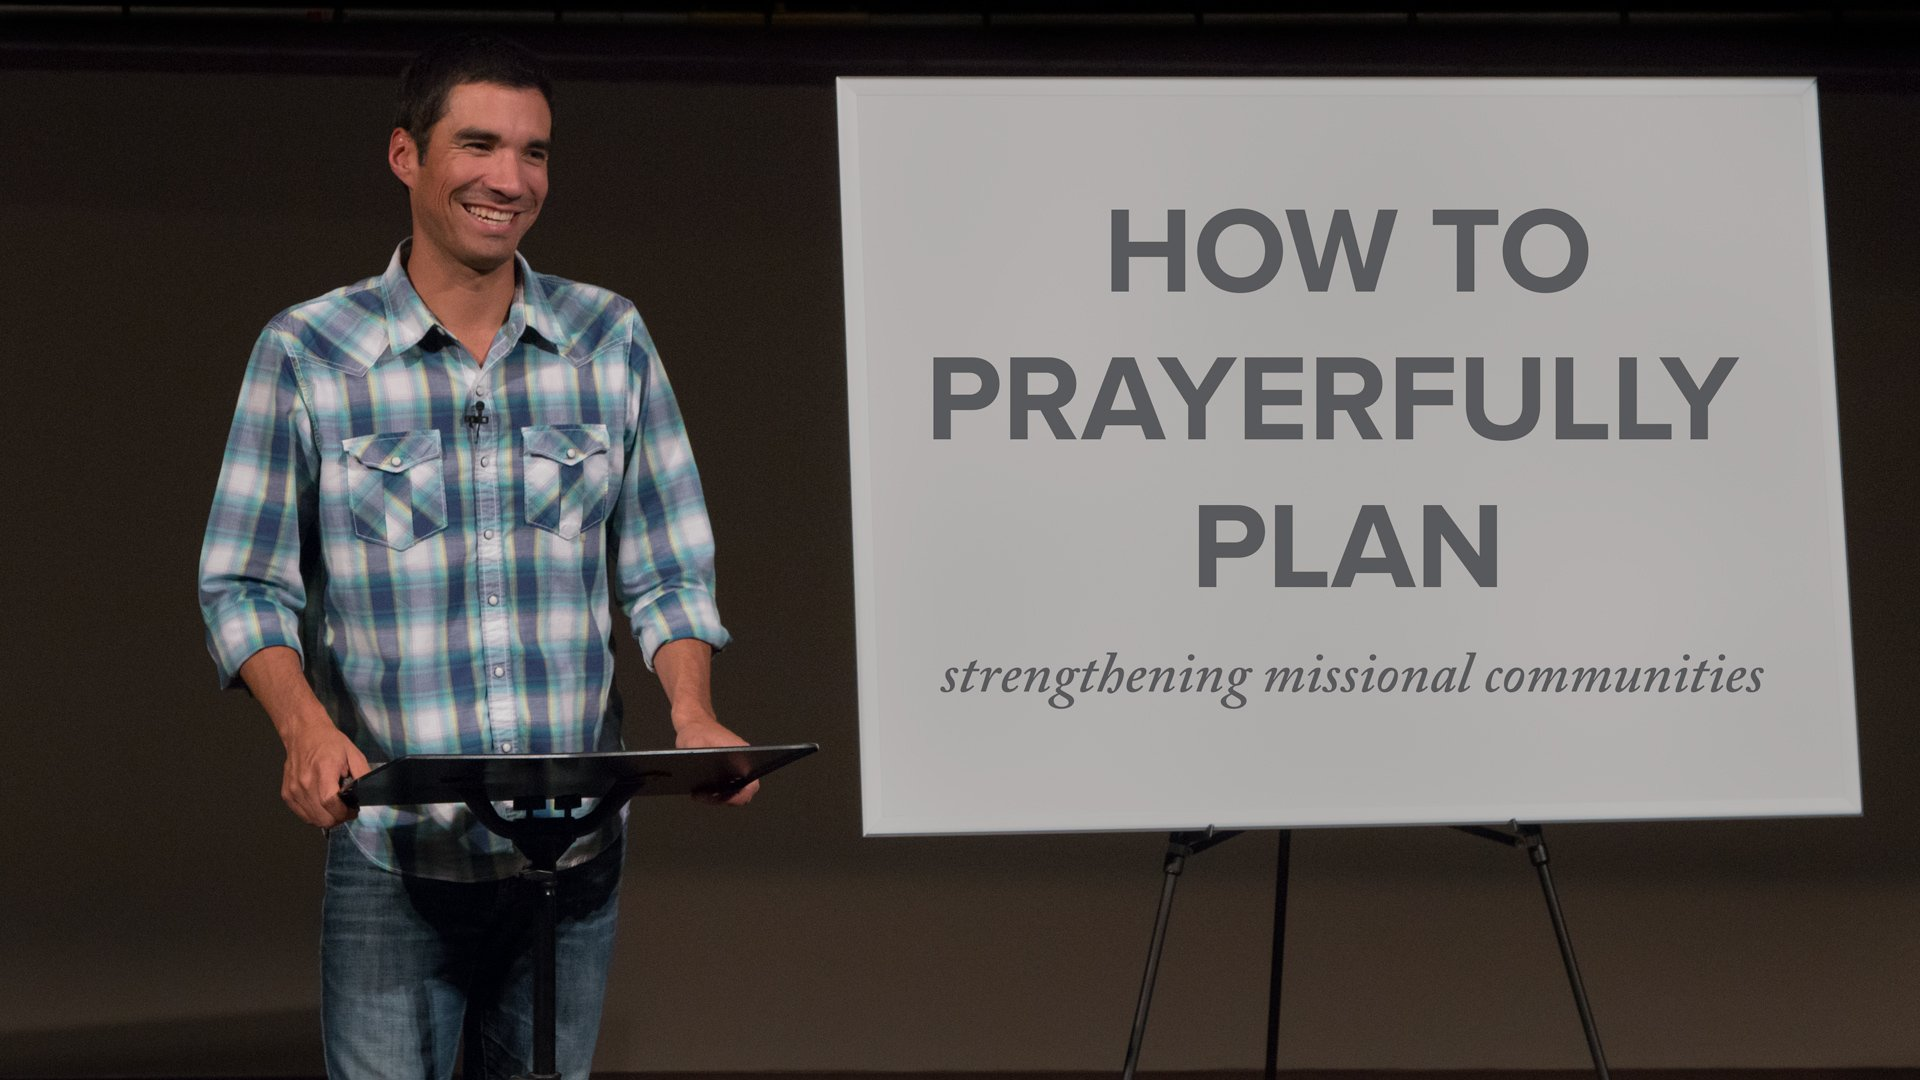 How to Prayerfully Plan